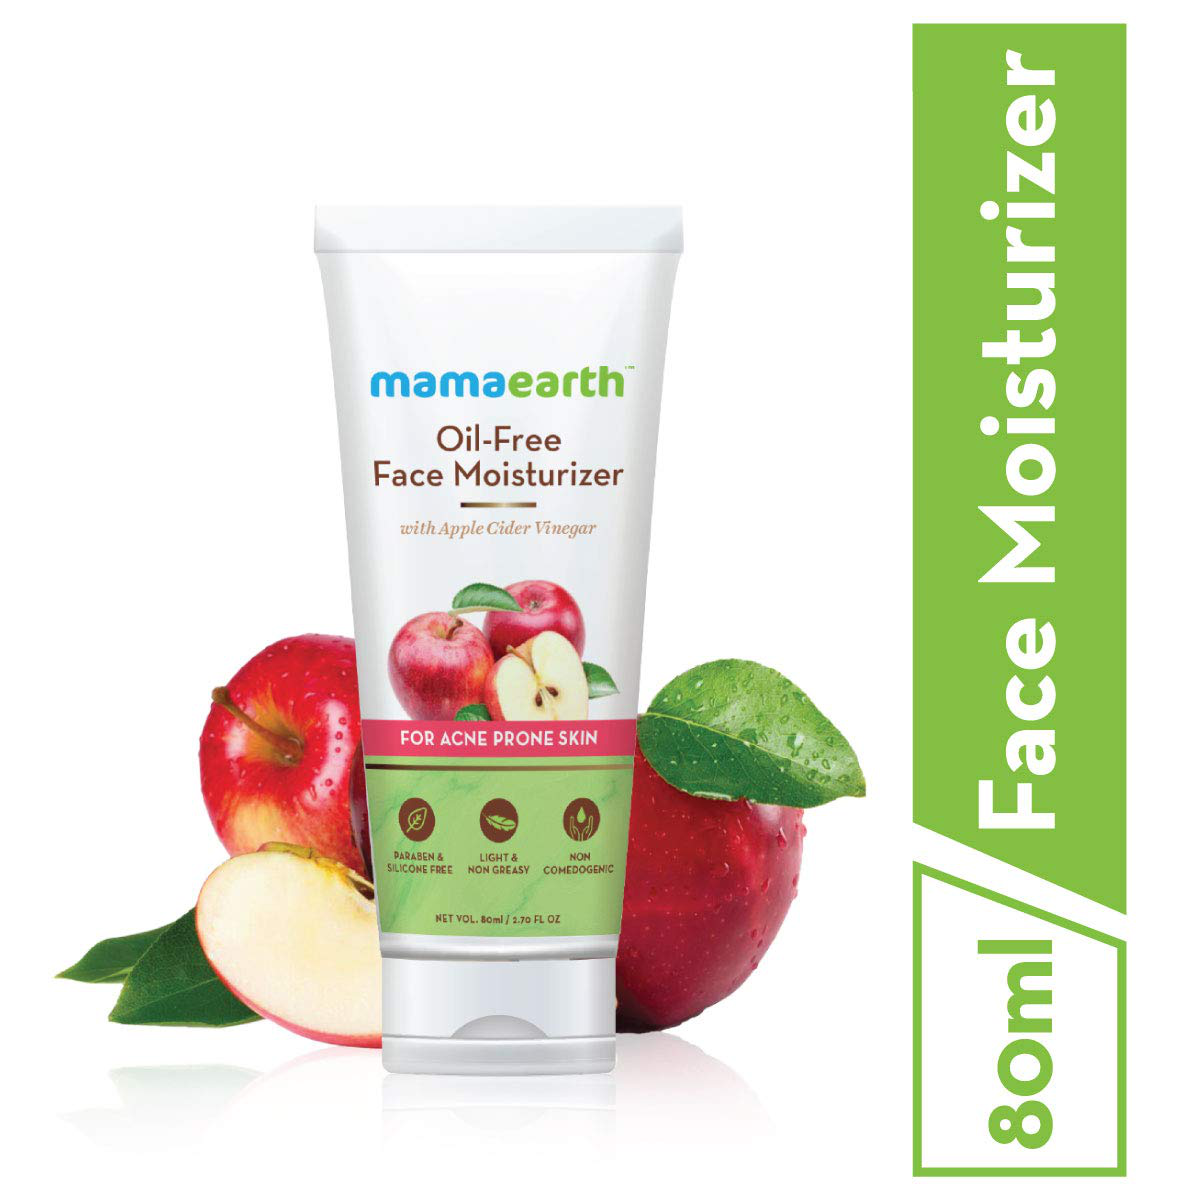 Mamaearth Oil-Free Moisturizer For Face With Apple Cider Vinegar For Acne Prone Skin